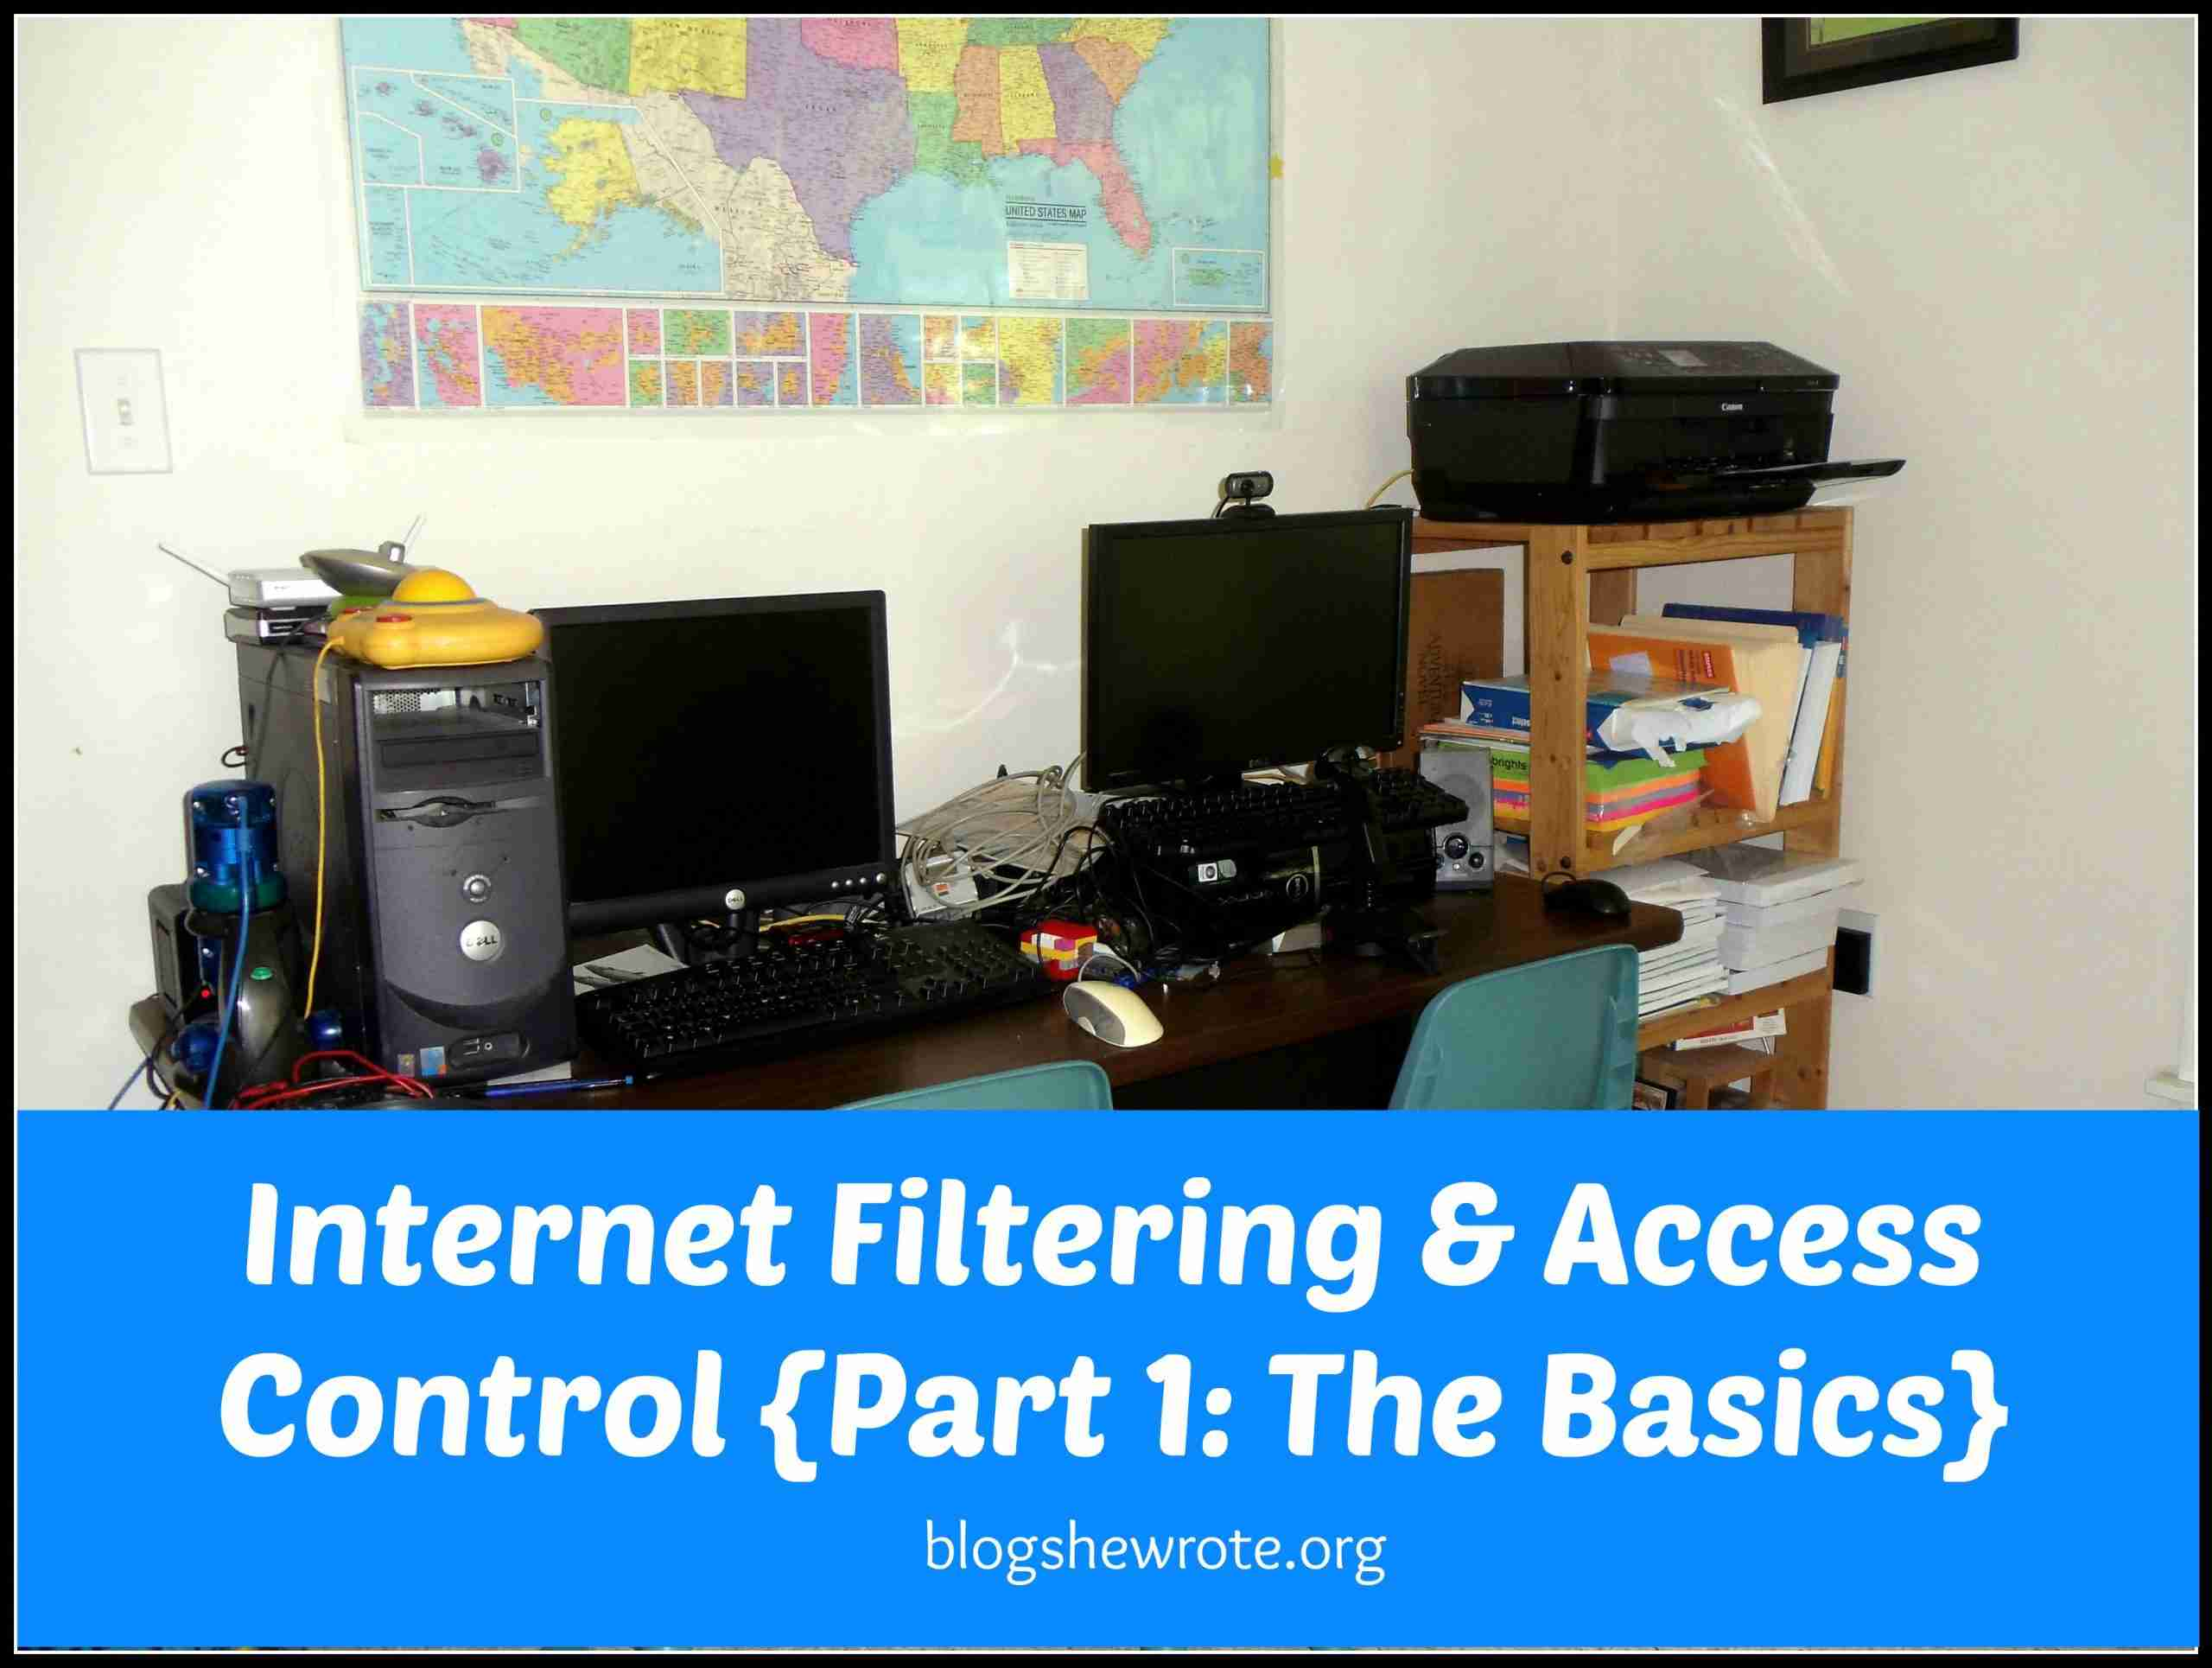 Blog, She Wrote: Internet Filtering & Access Control Part 1- The Basics